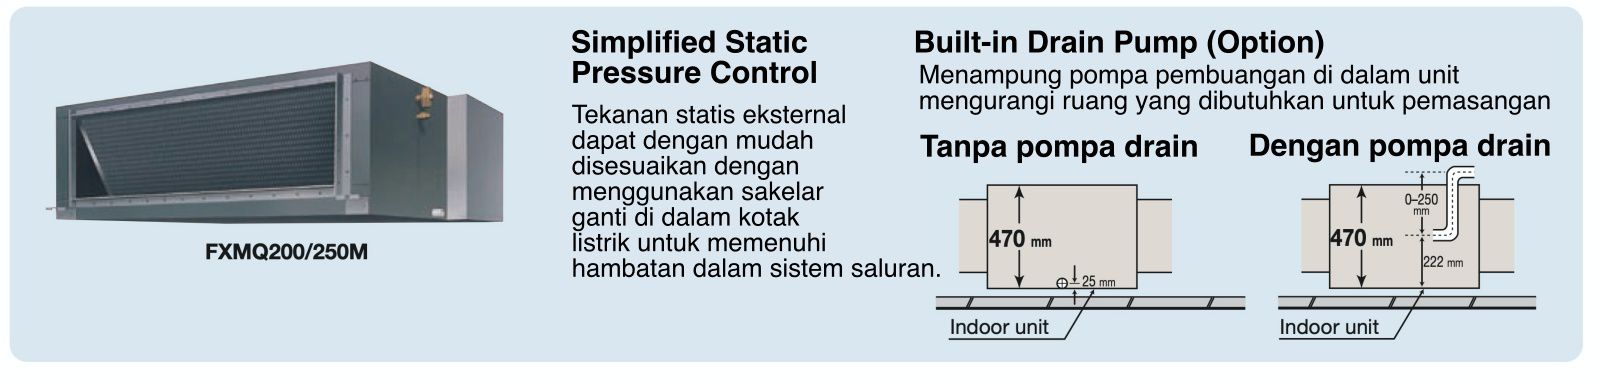 Simplified Static Pressure Control External static pressure can be easily adjusted using a change-over switch inside the electrical box to meet the resistance in the duct system.